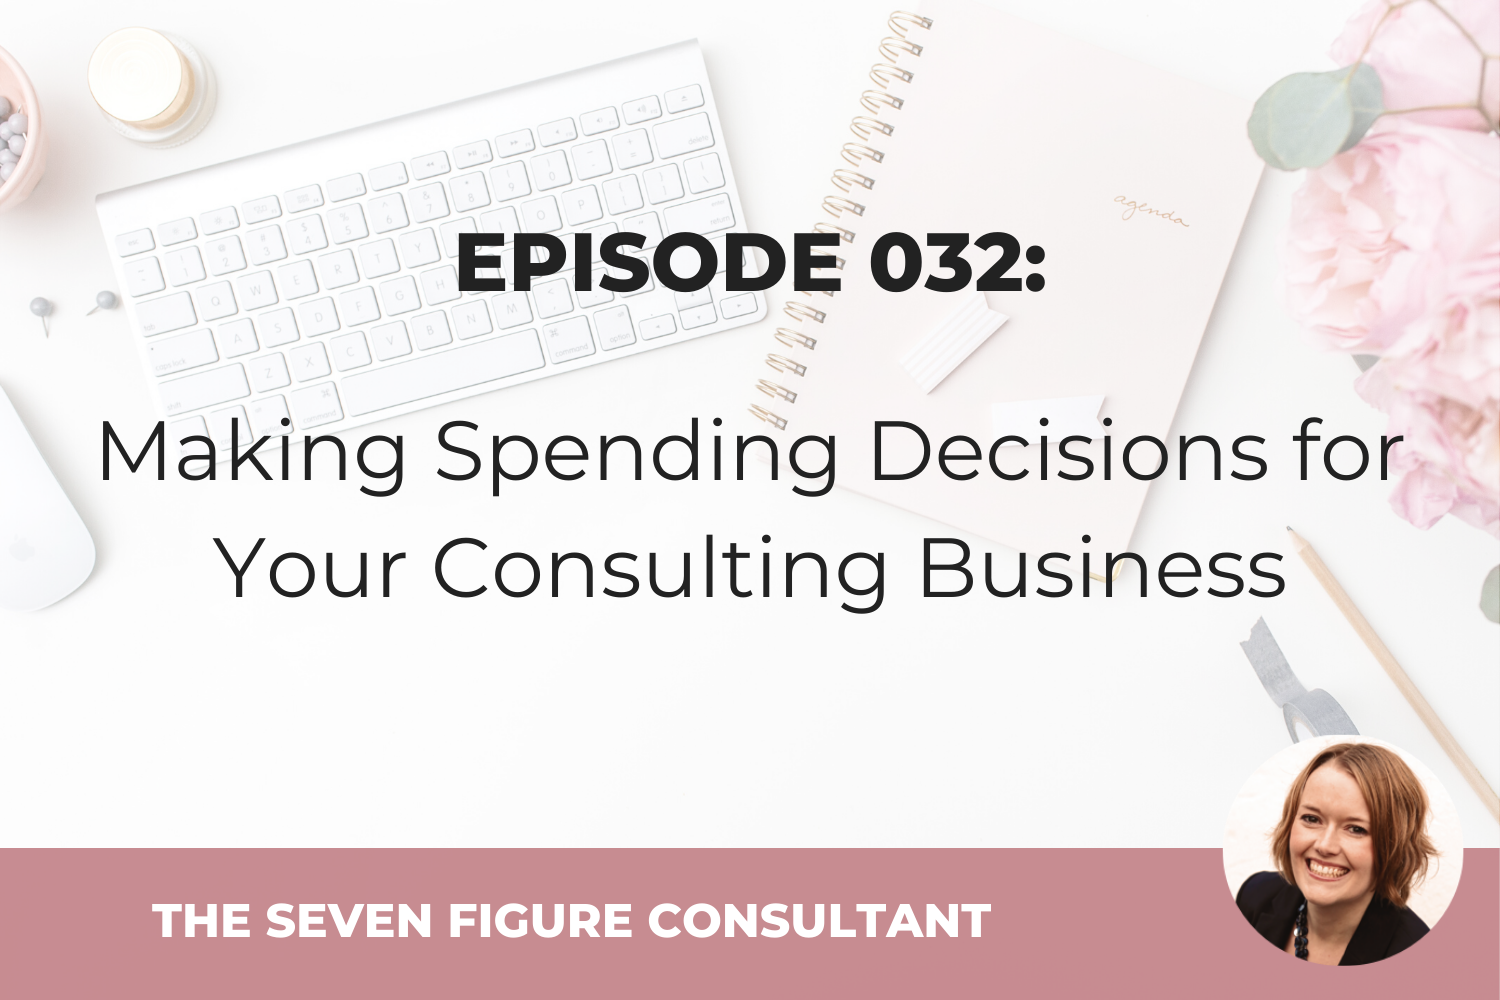 Episode 032: Making Spending Decisions for Your Consulting Business